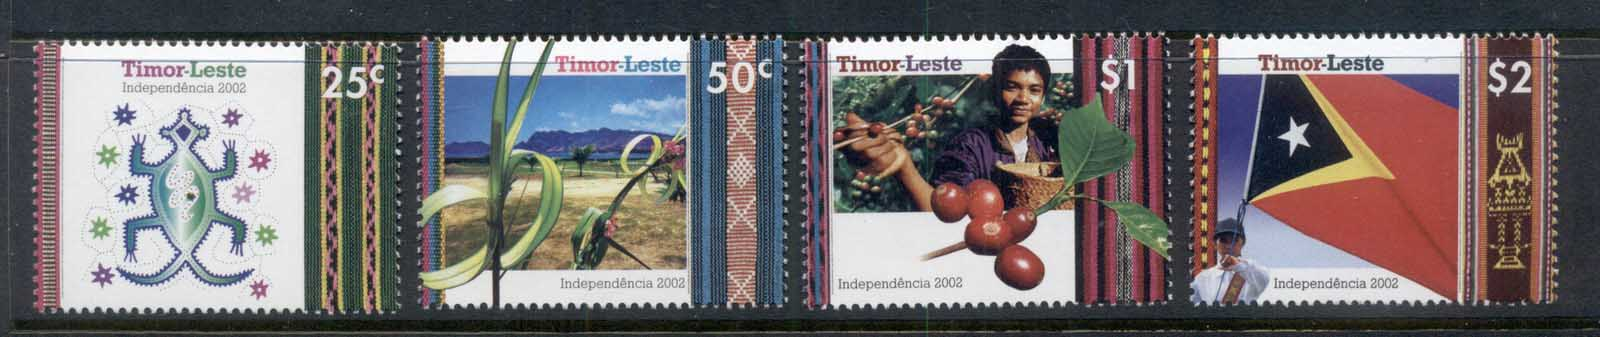 Timor East 2002 Independence MUH